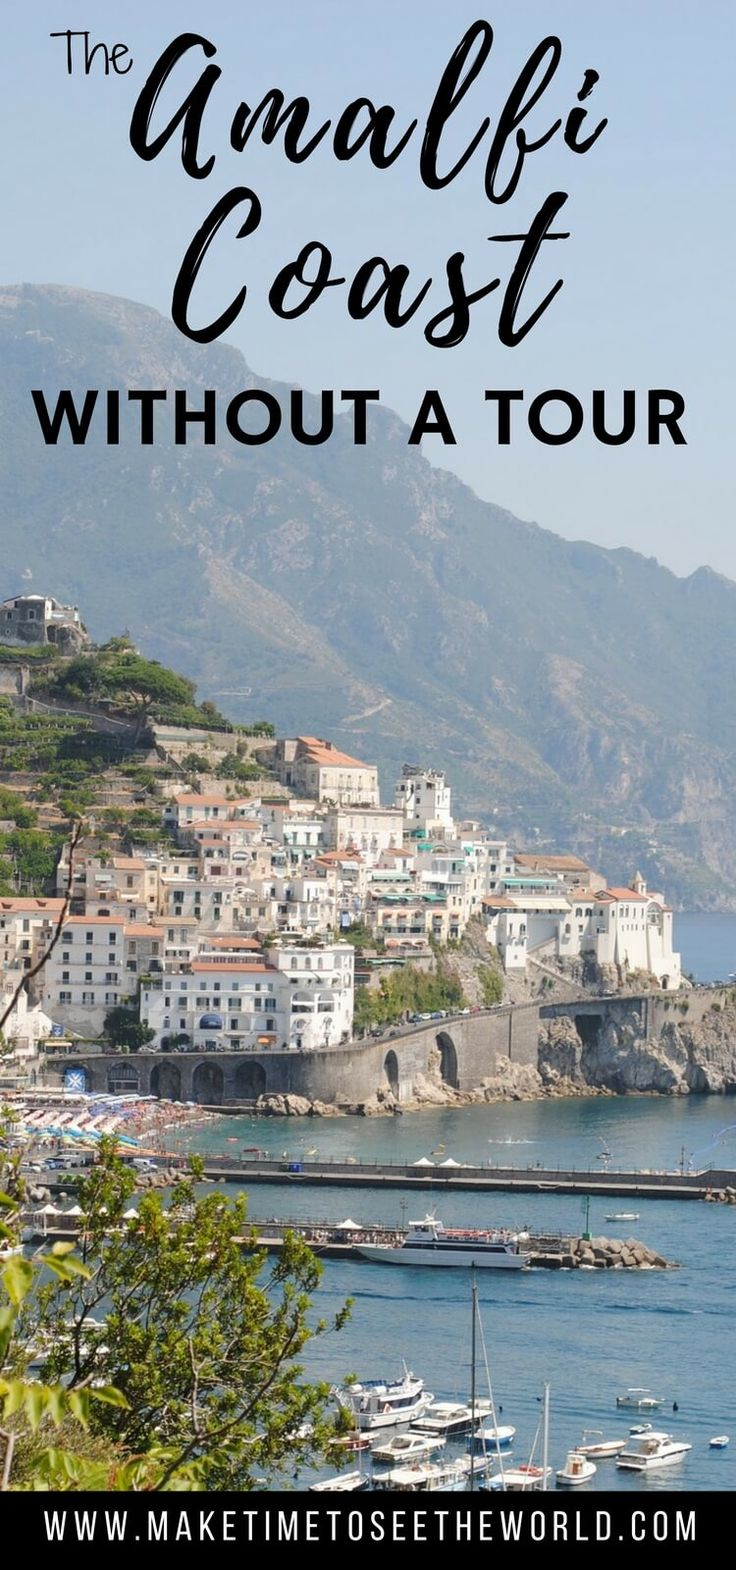 Travel Inspiration Features - Plan your own DIY Amalfi Coast Tour to Positano, Amalfi & Ravello including how to get there, where to stay and where to eat in each village! ****************************************************************************************** Amalfi Coast Italy | Amalfi Coast | Positano | Amalfi | Ravello | Amalfi Coast Without a Tour | Amalfi Coast Itinerary ... See more @gr8traveltips